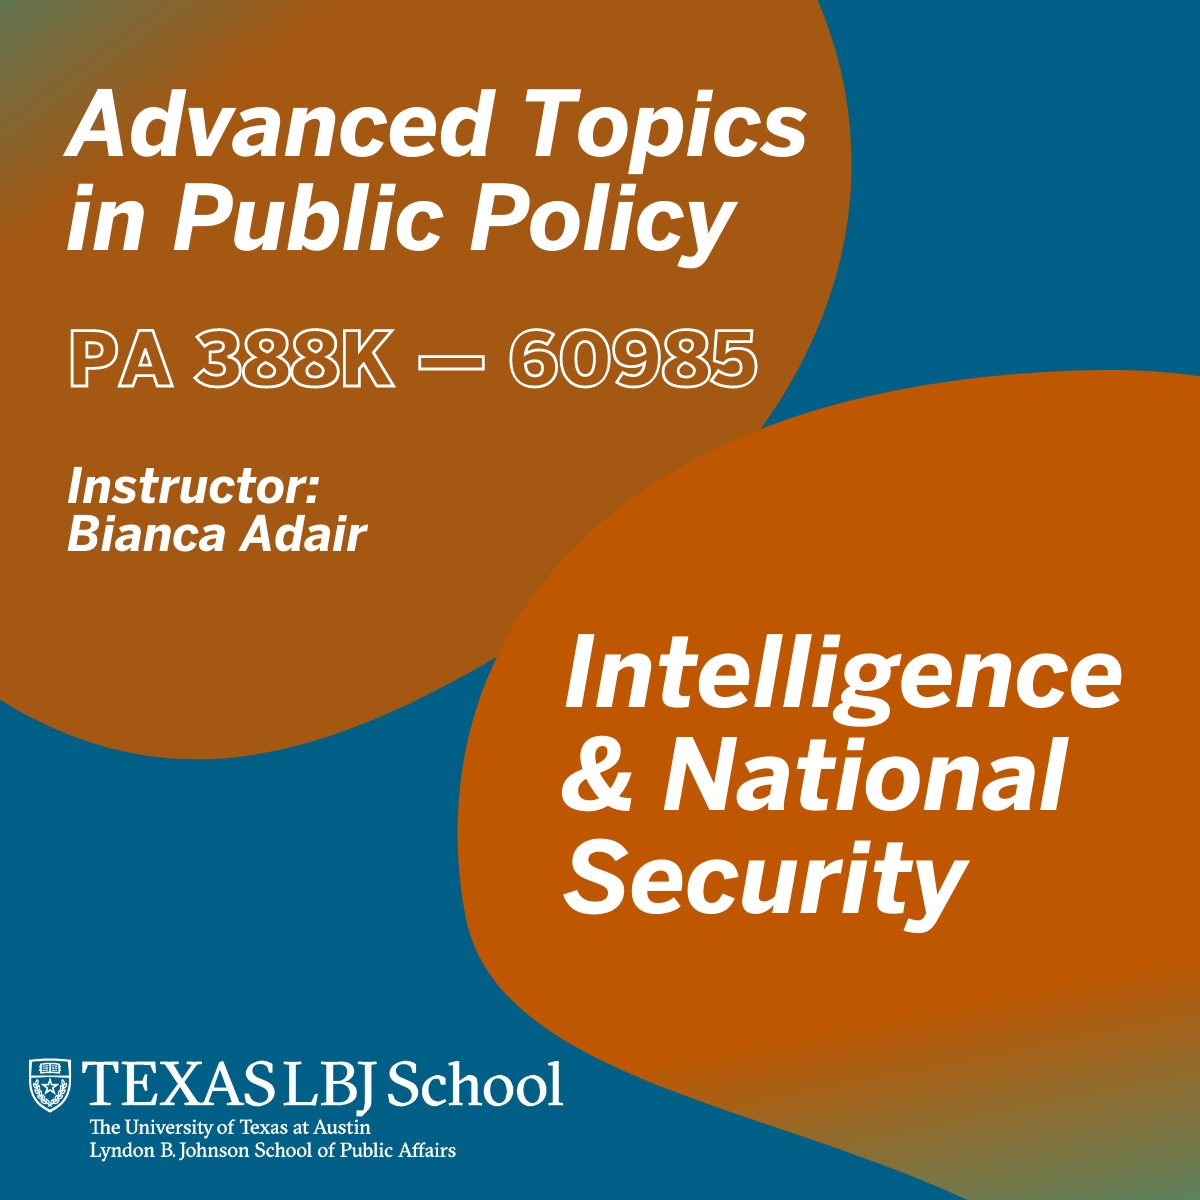 Fall 2021 class: Advanced Topics in Public Policy: Intelligence & National Security